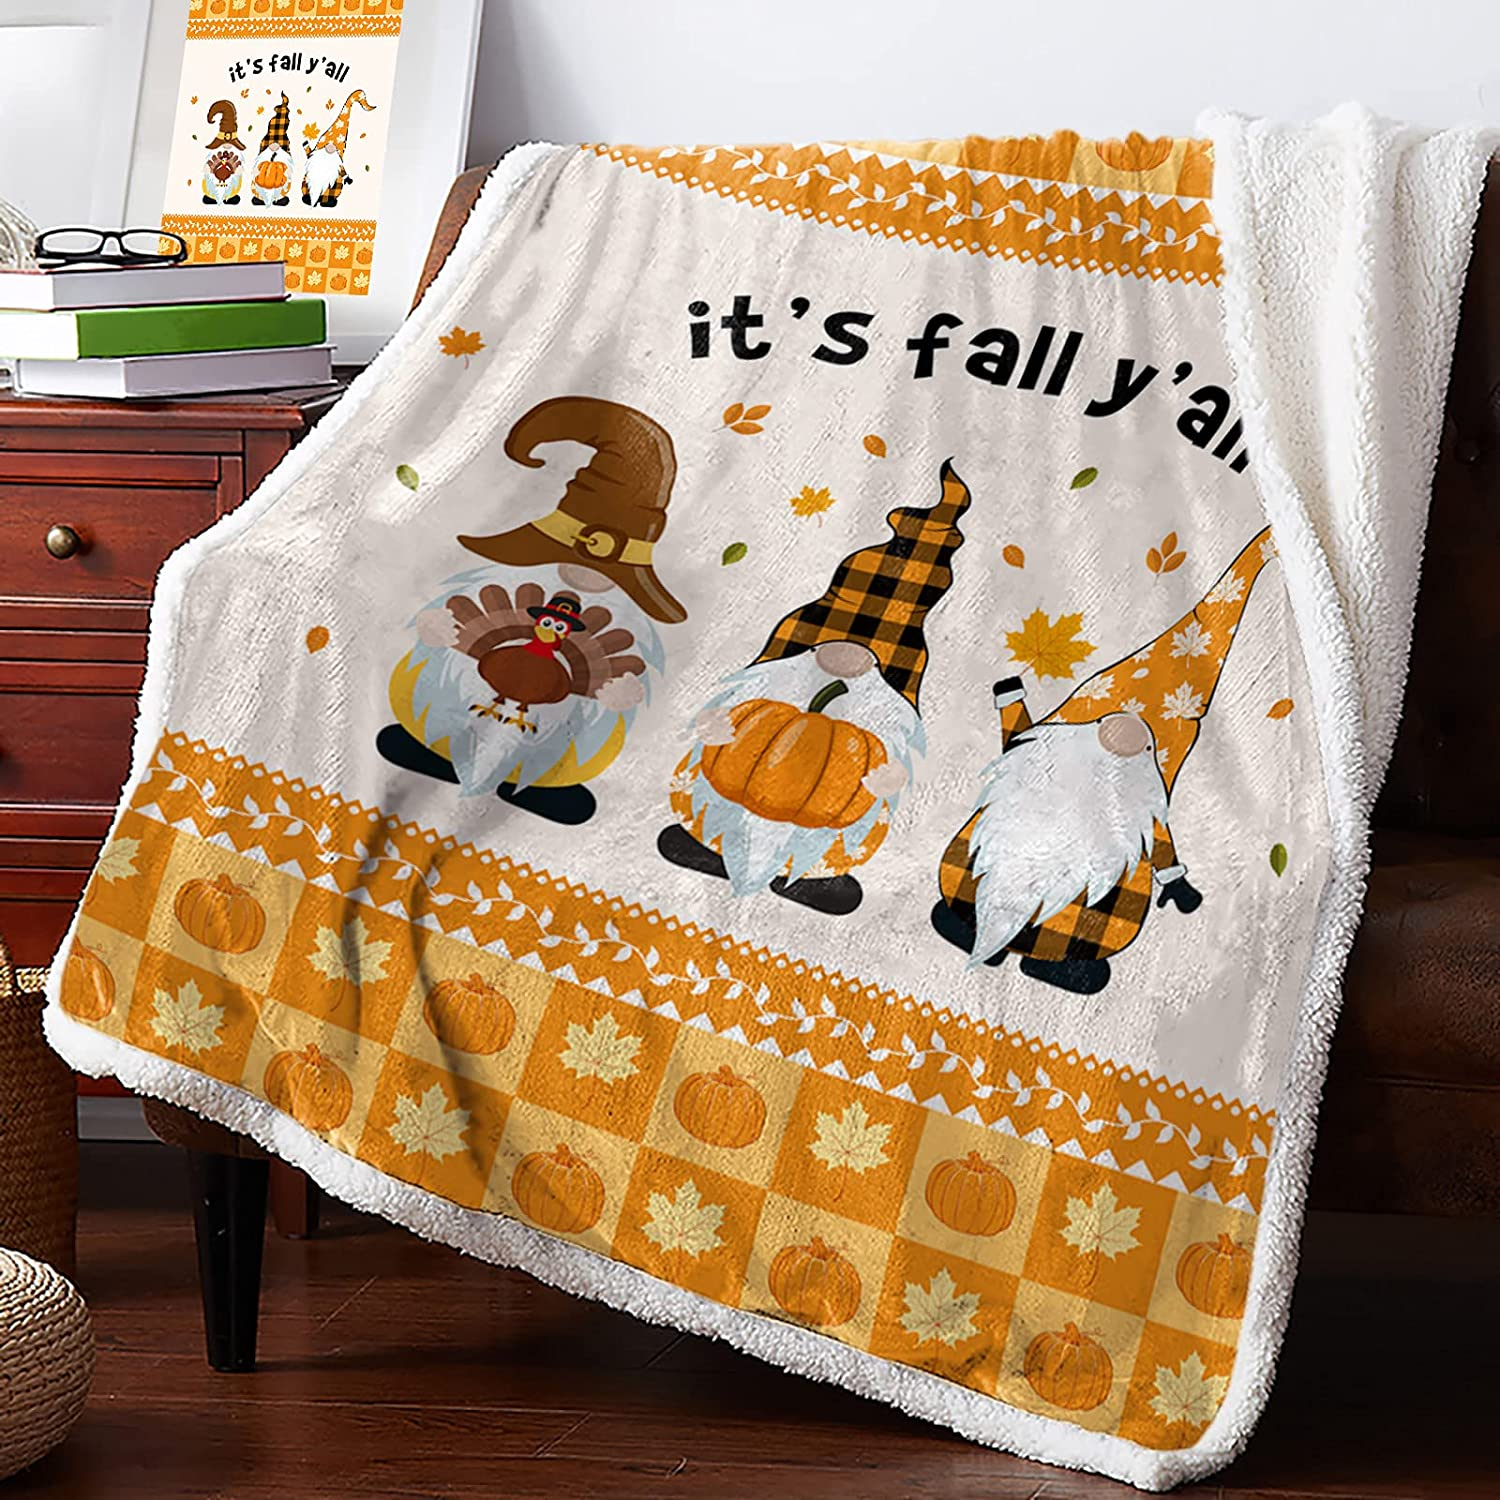 Sherpa Fleece Blanket 60x80 In Plush Reversible High quality new Max 60% OFF f Soft